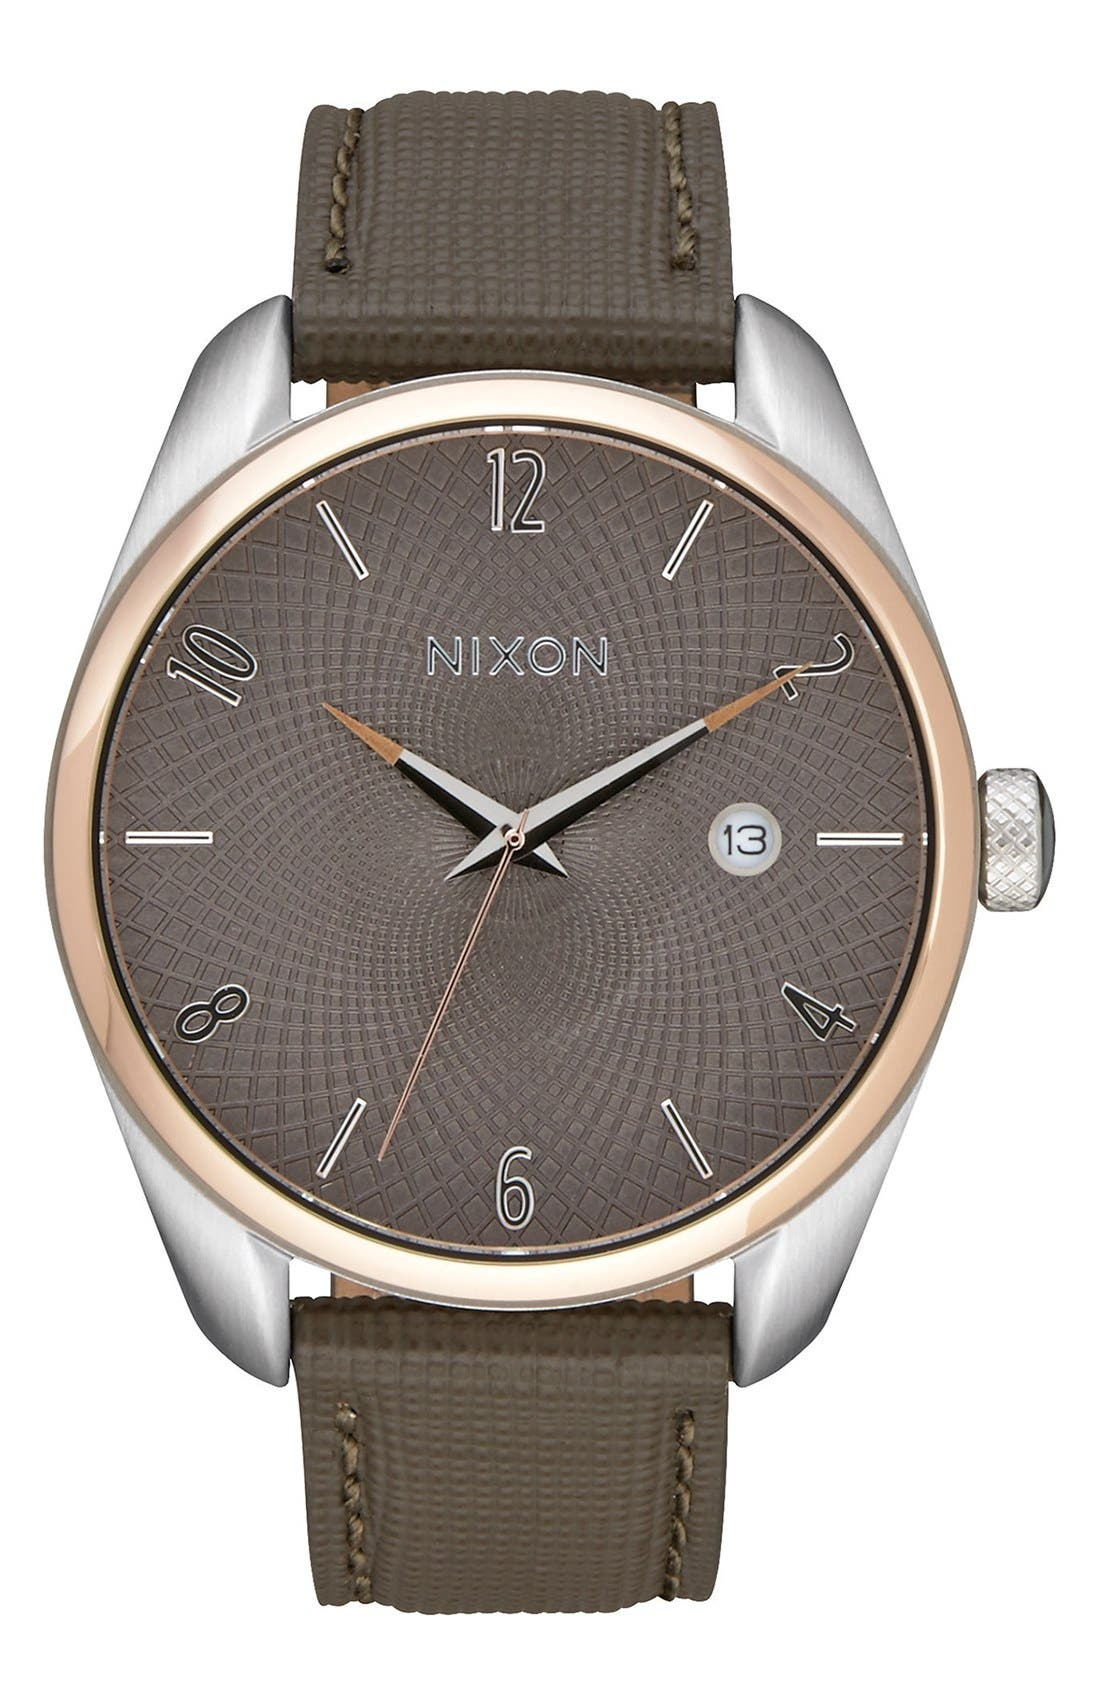 NIXON Bullet Leather Strap Watch, 38mm